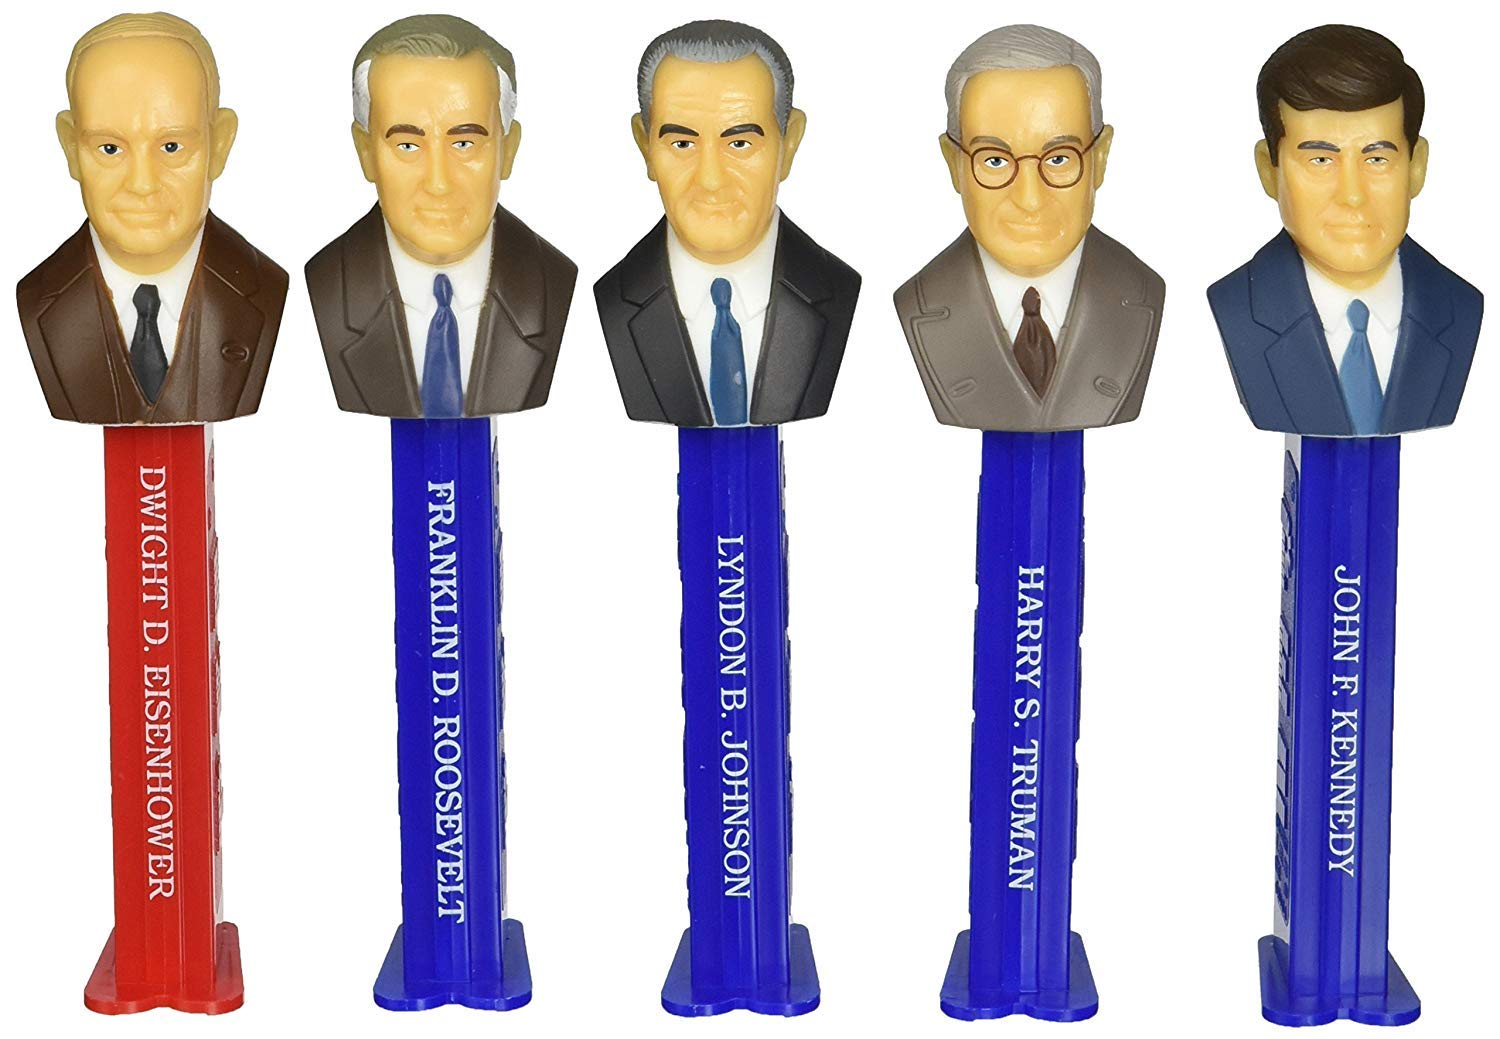 PEZ Candy Presidents of The United States Dispensers: Volume 7 - 1933-1969 by PEZ Candy